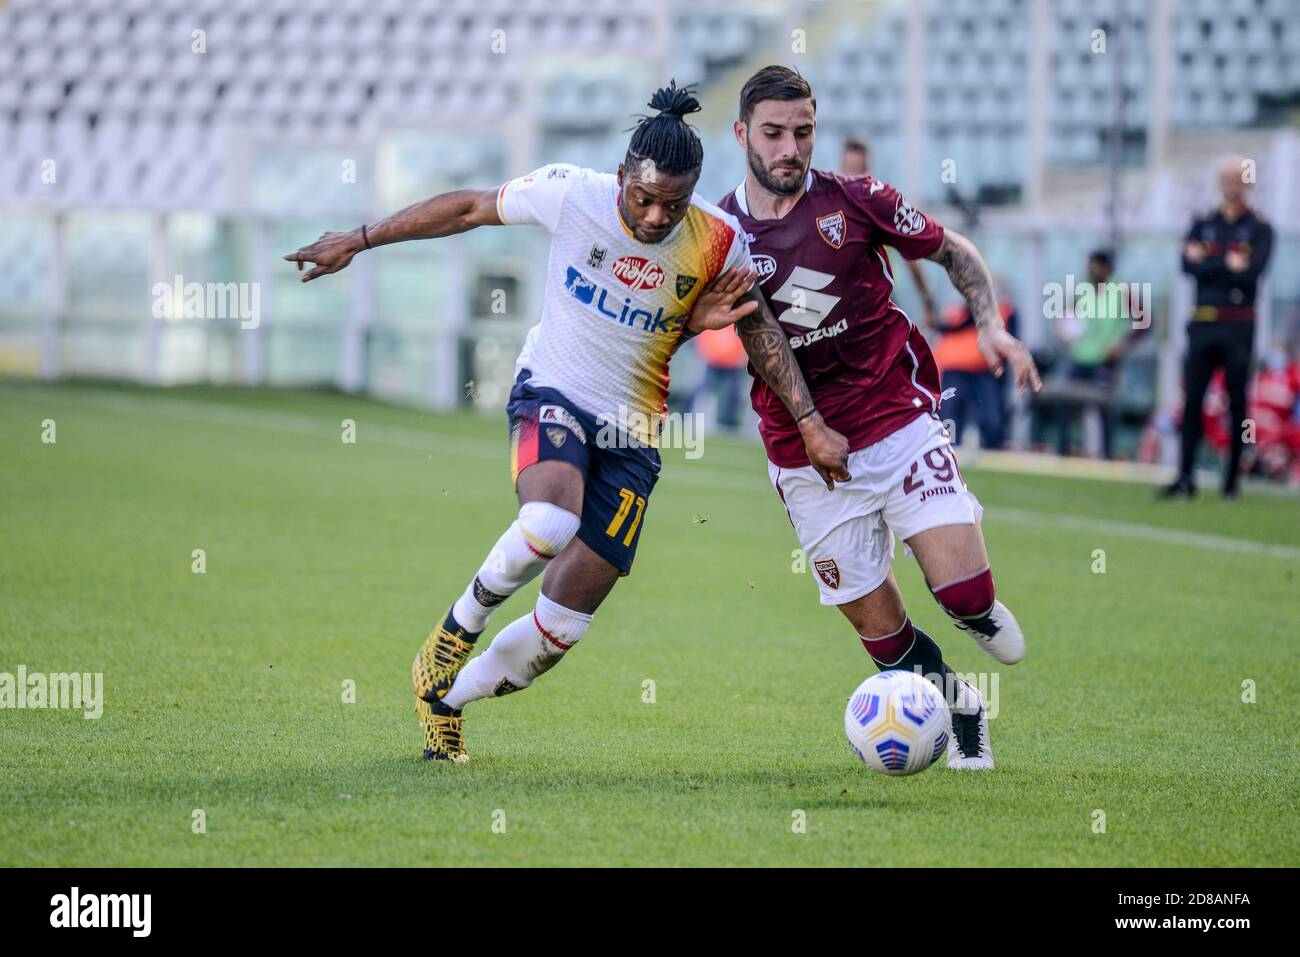 Nicola Murru of Torino FC and Claud Adjapong of US Lecce during the Coppa Italia football match between Torino FC and US Lecce at Olympic Grande Torin Stock Photo